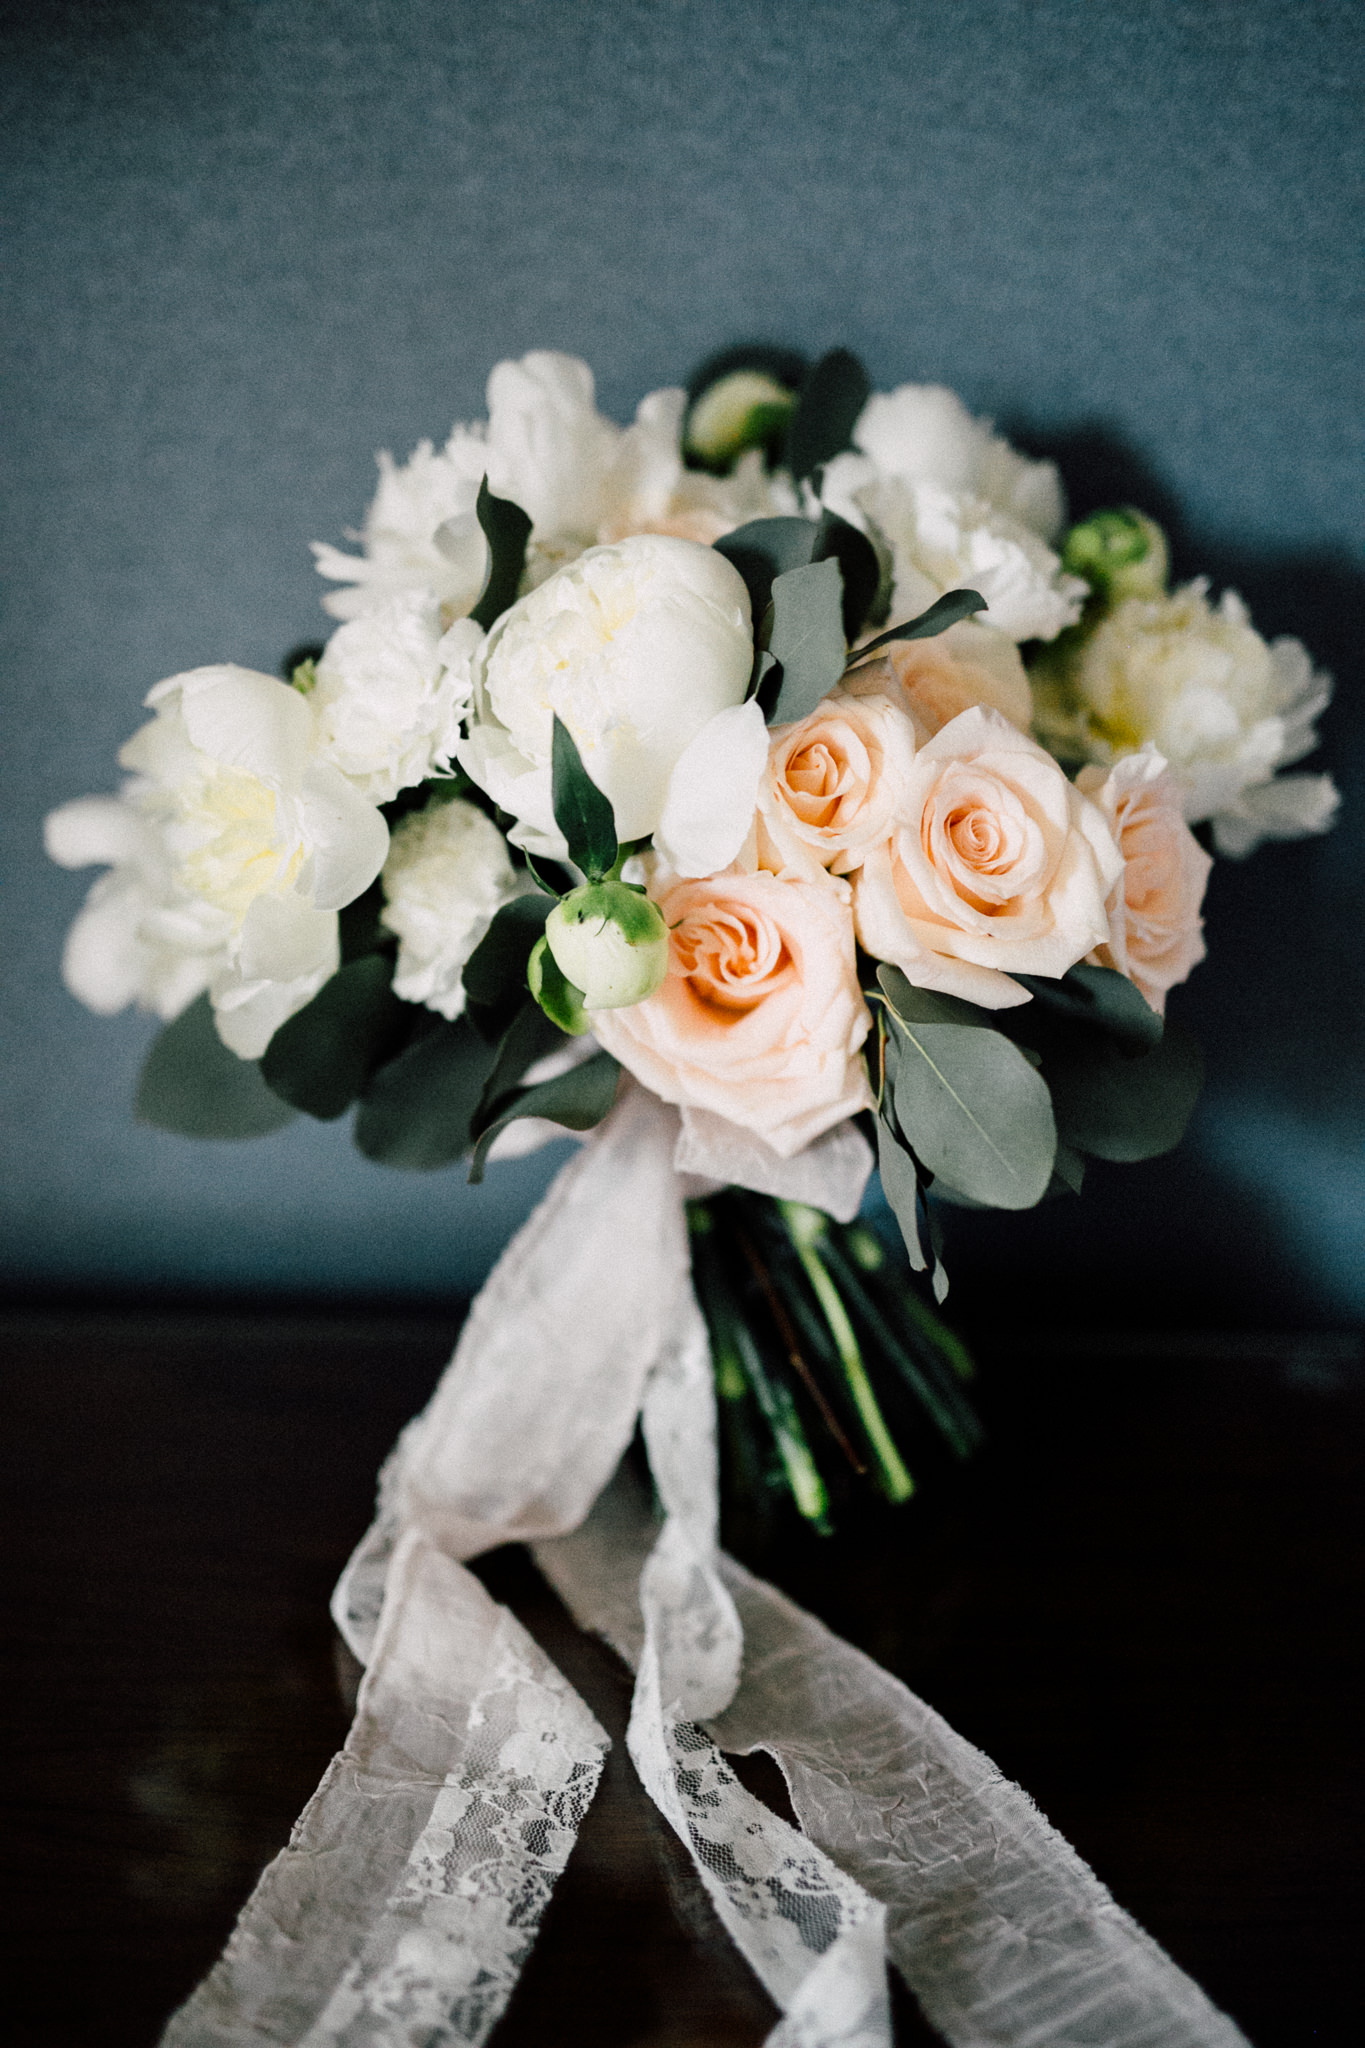 Queens-Landing-Niagara-on-the-Lake-Wedding-photography-by-Simply-Lace-004.JPG